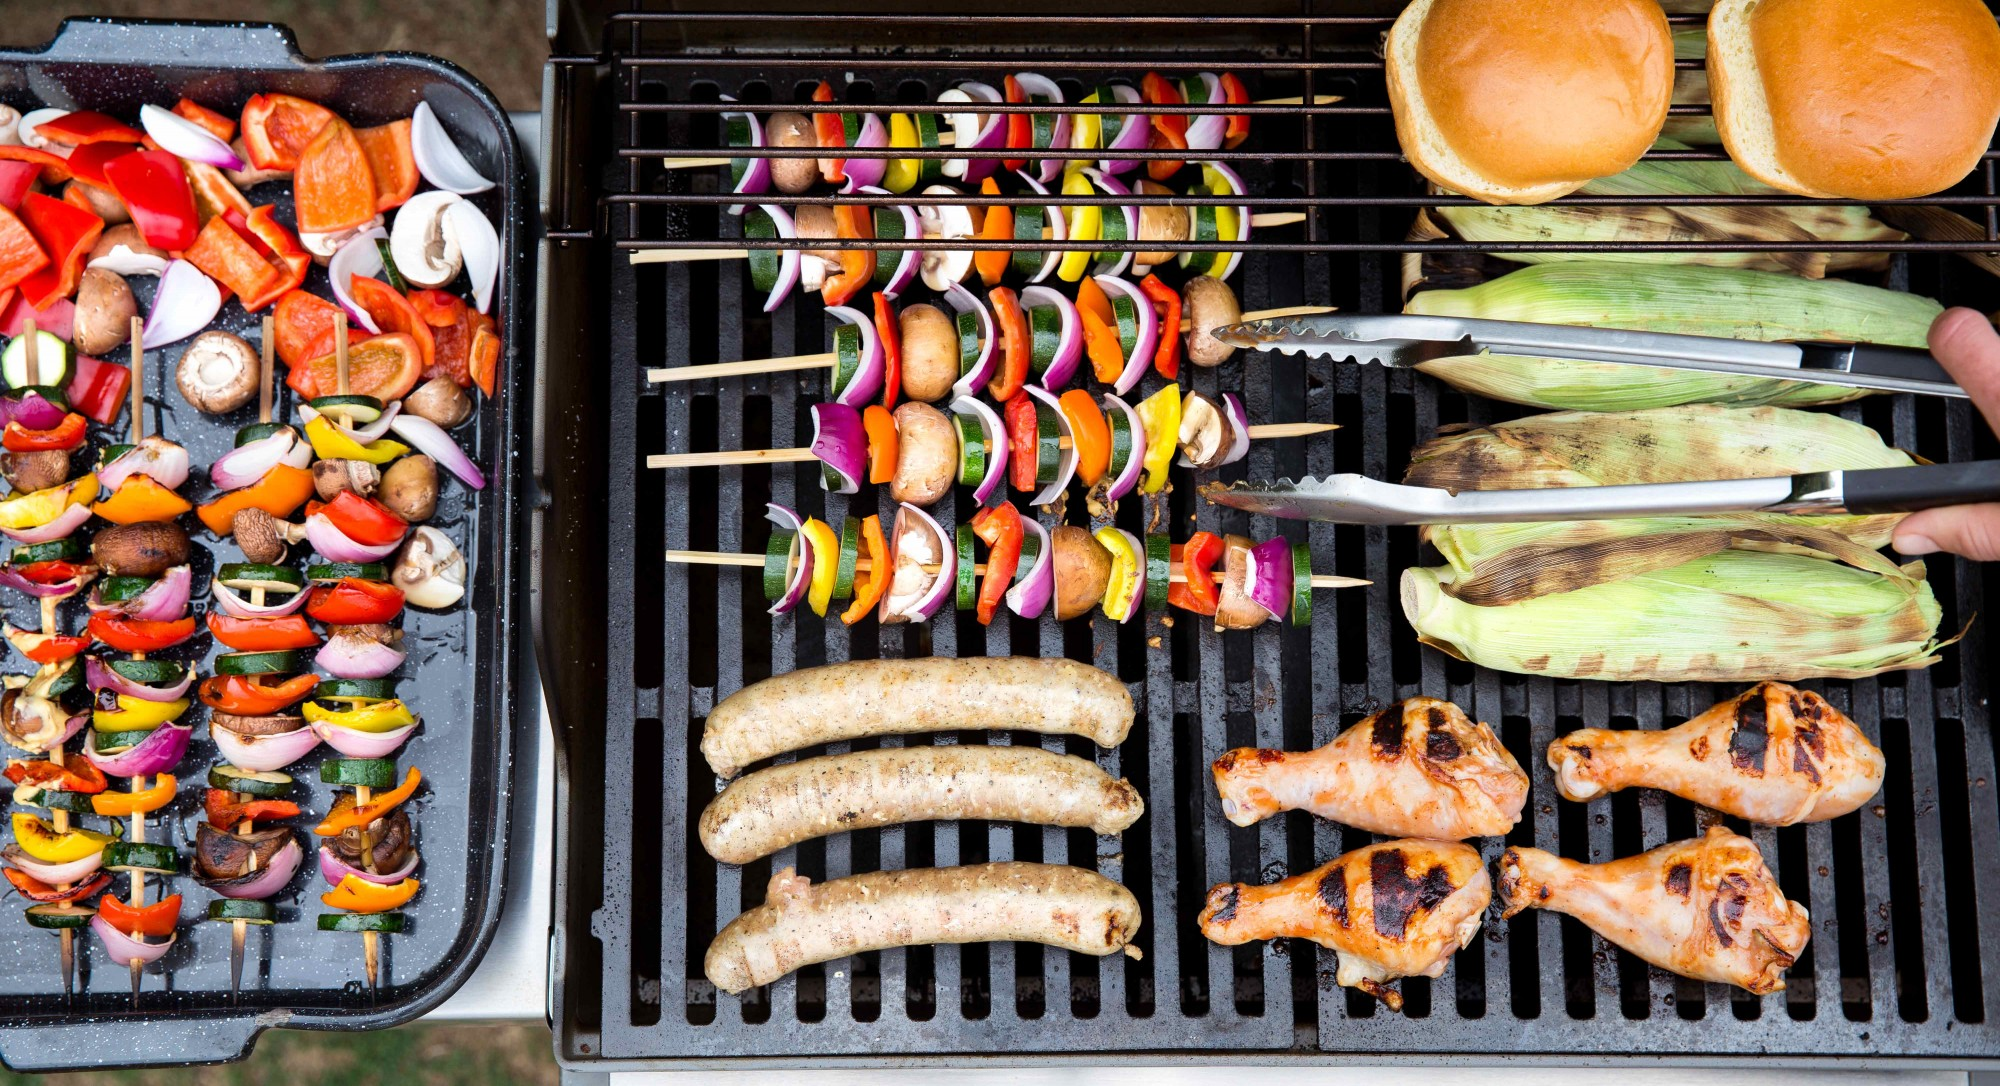 Tip of the Week: This 10-Second Test Will Tell You When the Barbecue's Ready